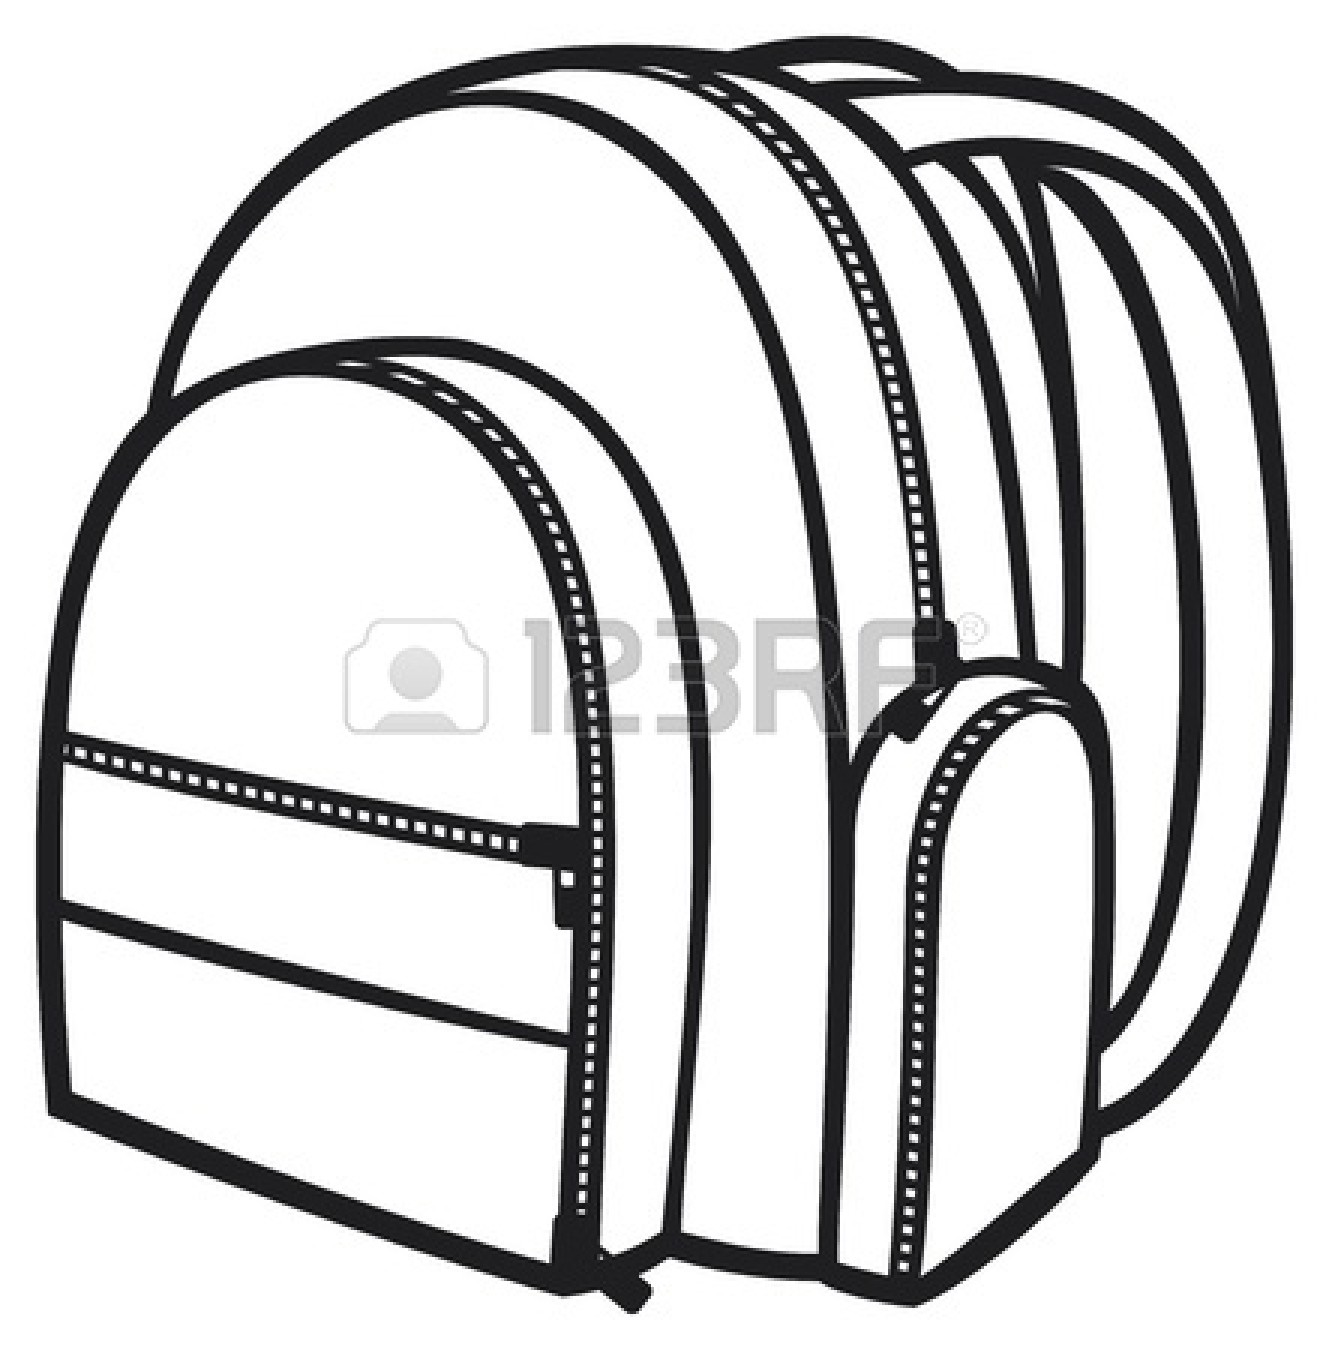 ... -clipart-black-and-white-18661617-bag-pack-backpack-school-bag.jpg